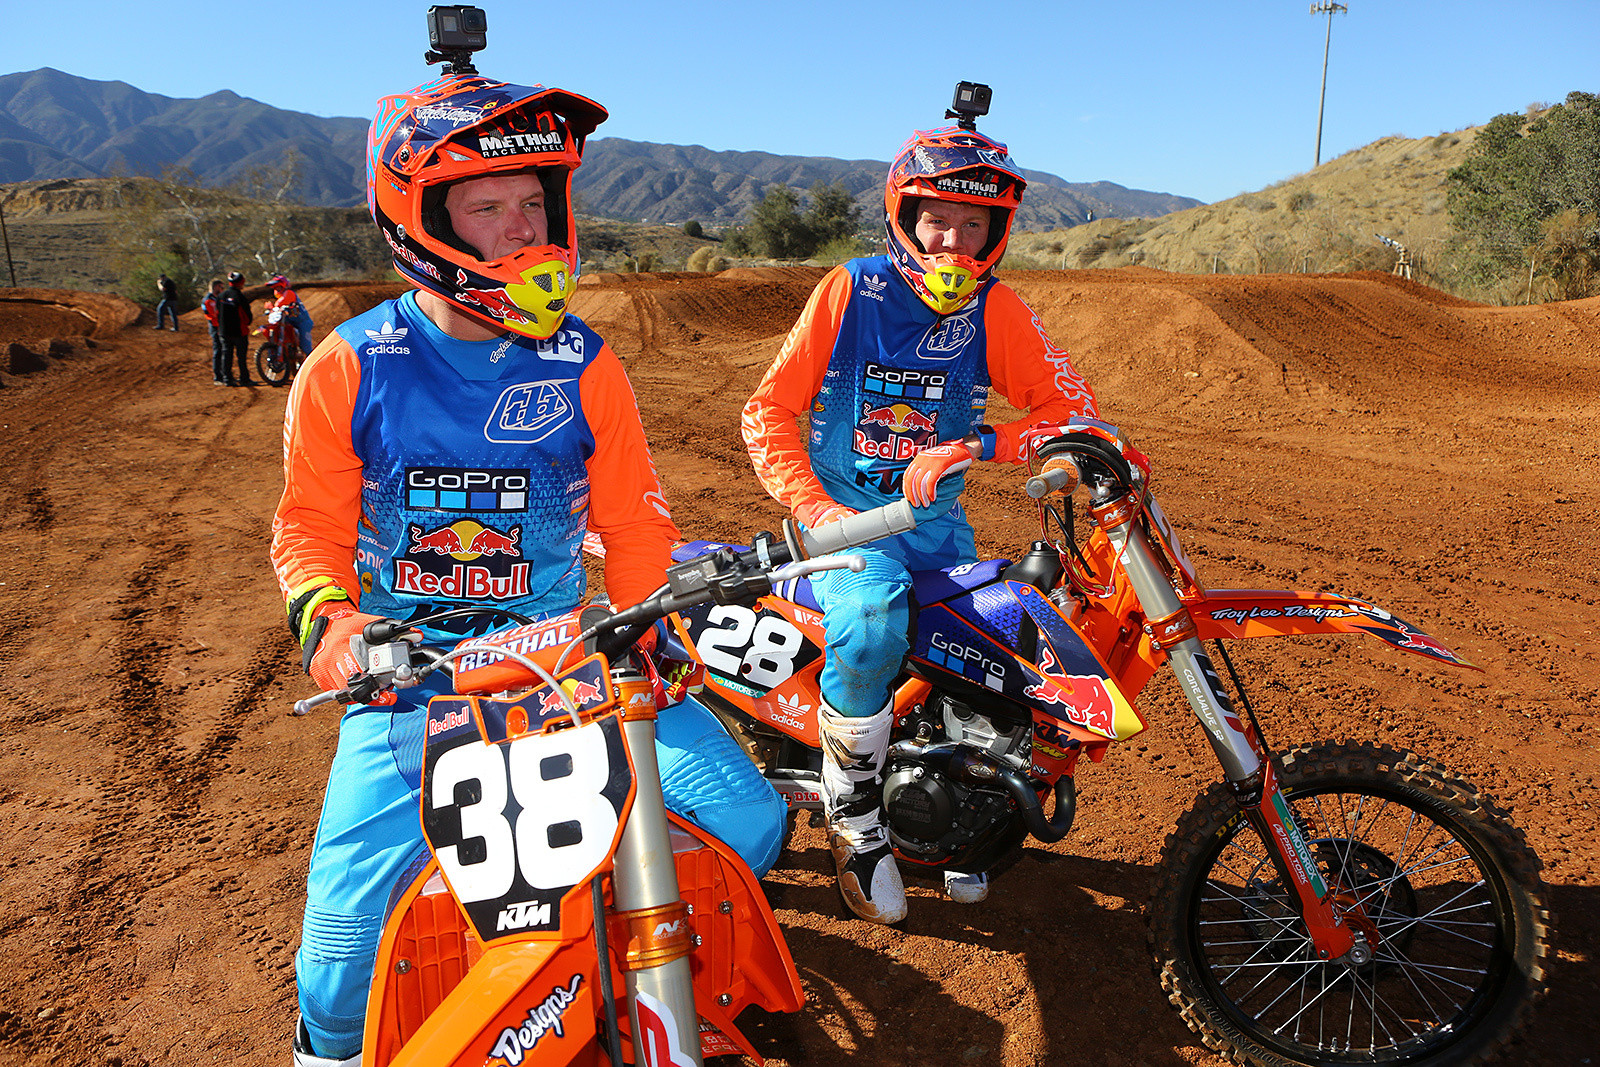 Shane McElrath and Mitchell Oldenburg - 2017 KTM Supercross Factory and Support Team Intro - Motocross Pictures - Vital MX